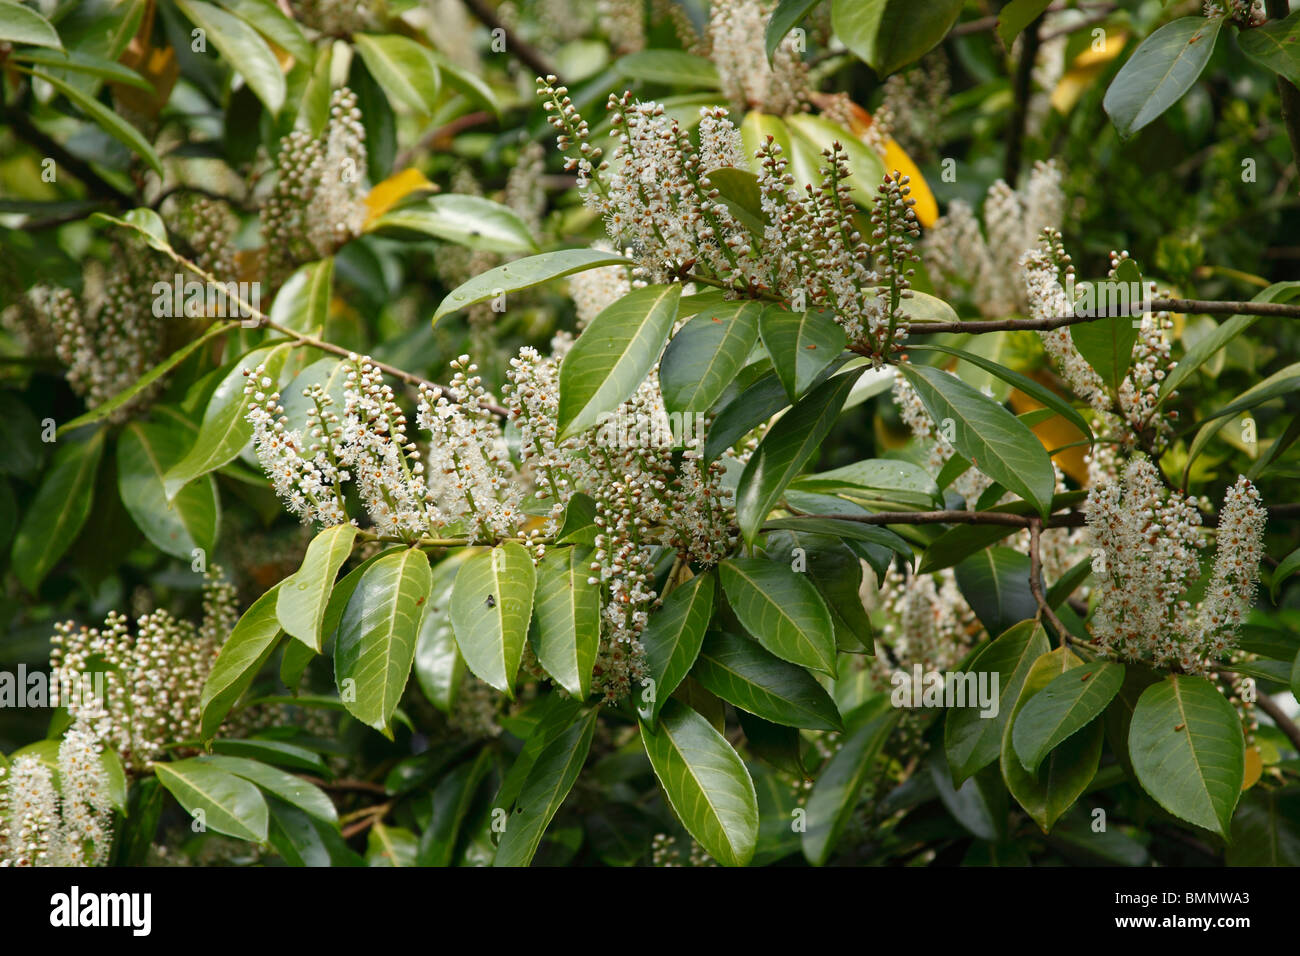 laurel (Prunus laurocerasus) tree in flower - Stock Image